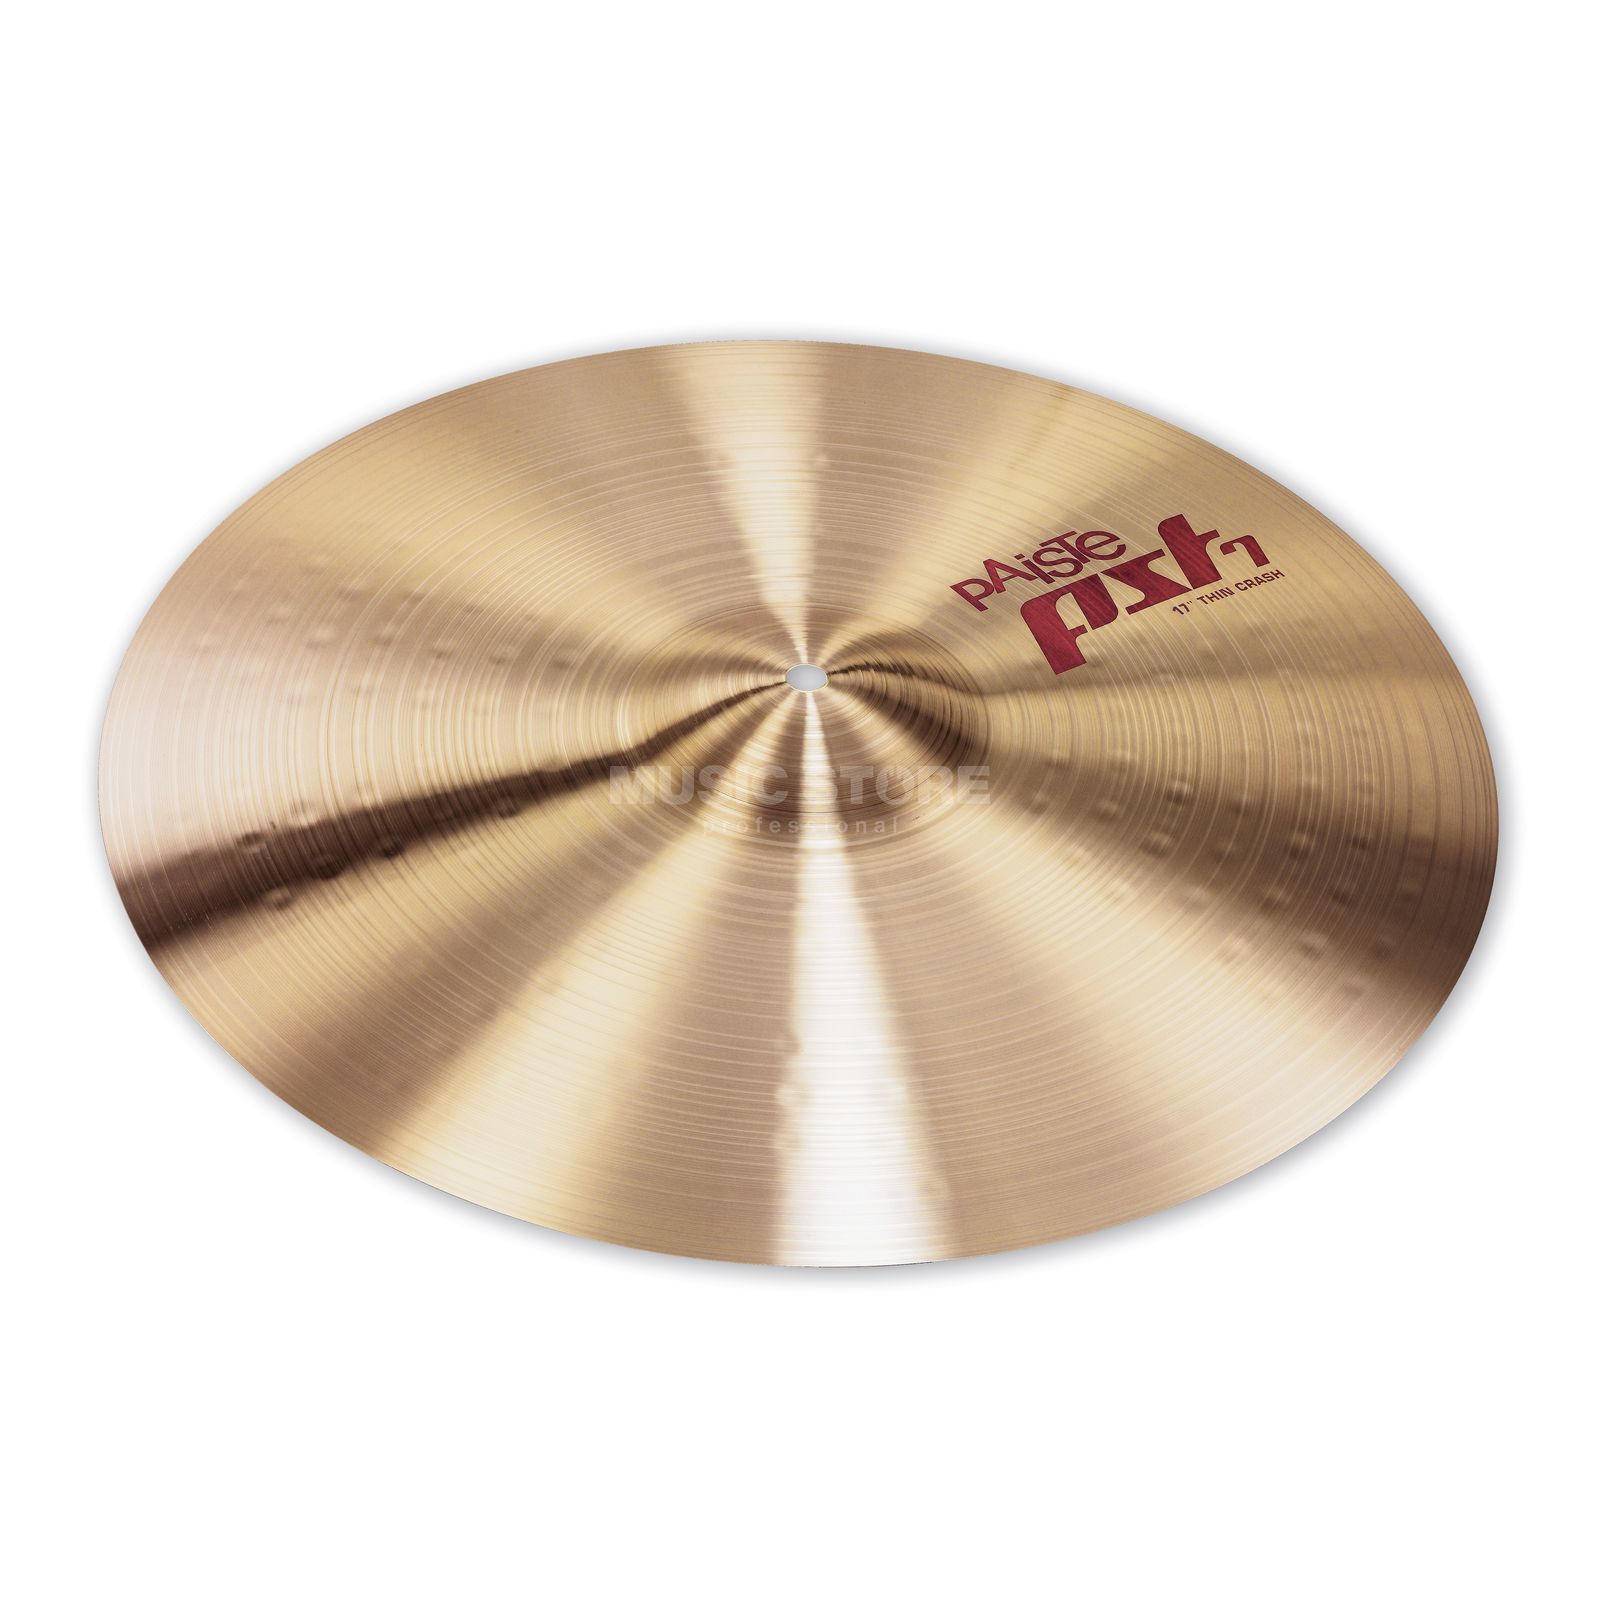 "Paiste PST7 Thin Crash 17"" Product Image"